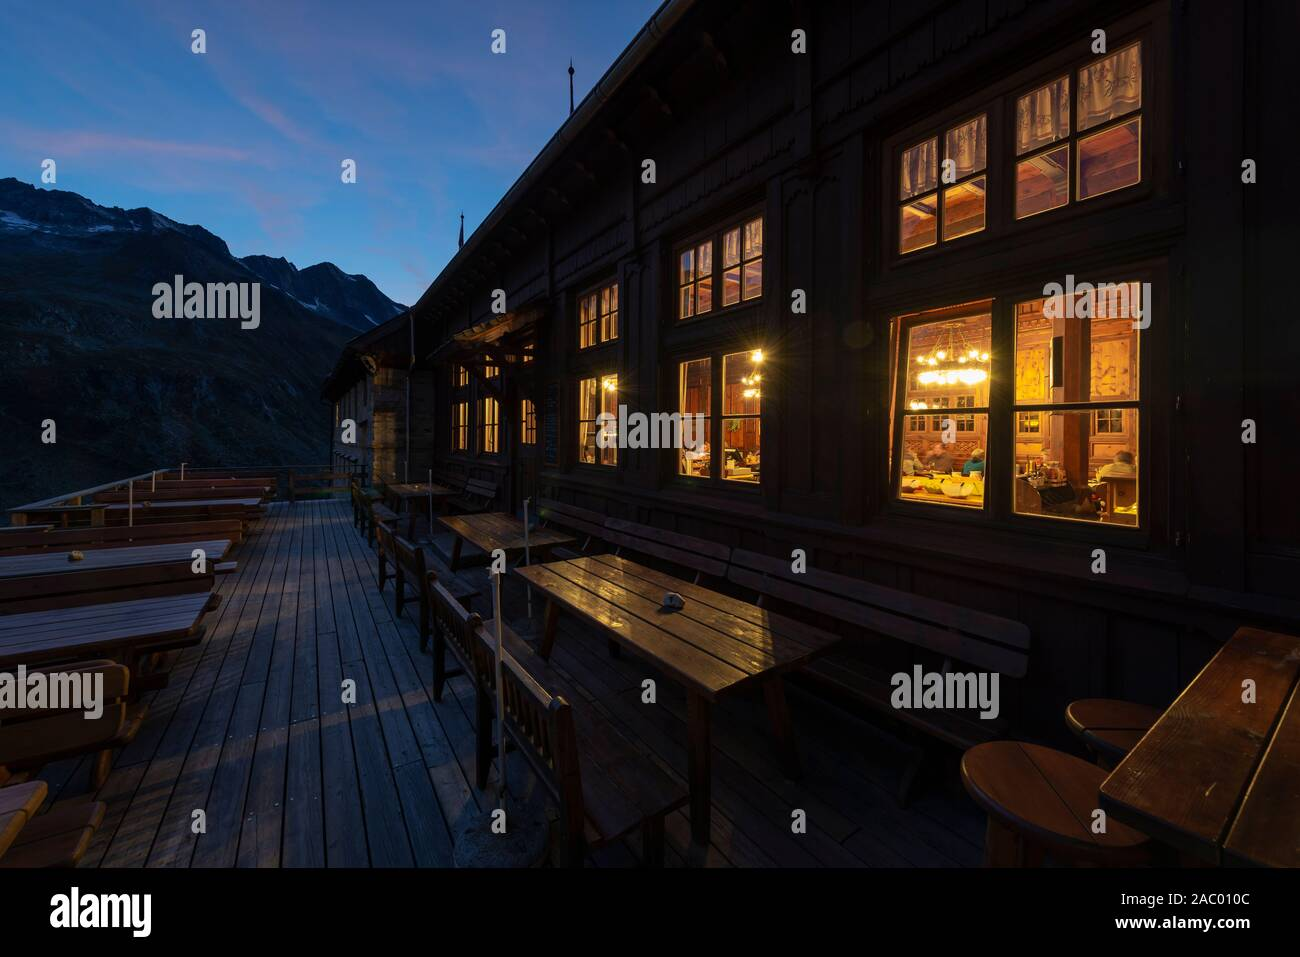 View of the illuminated dining room of the Berliner Hut during sunset , Zillertal, Tyrol, Austria Stock Photo